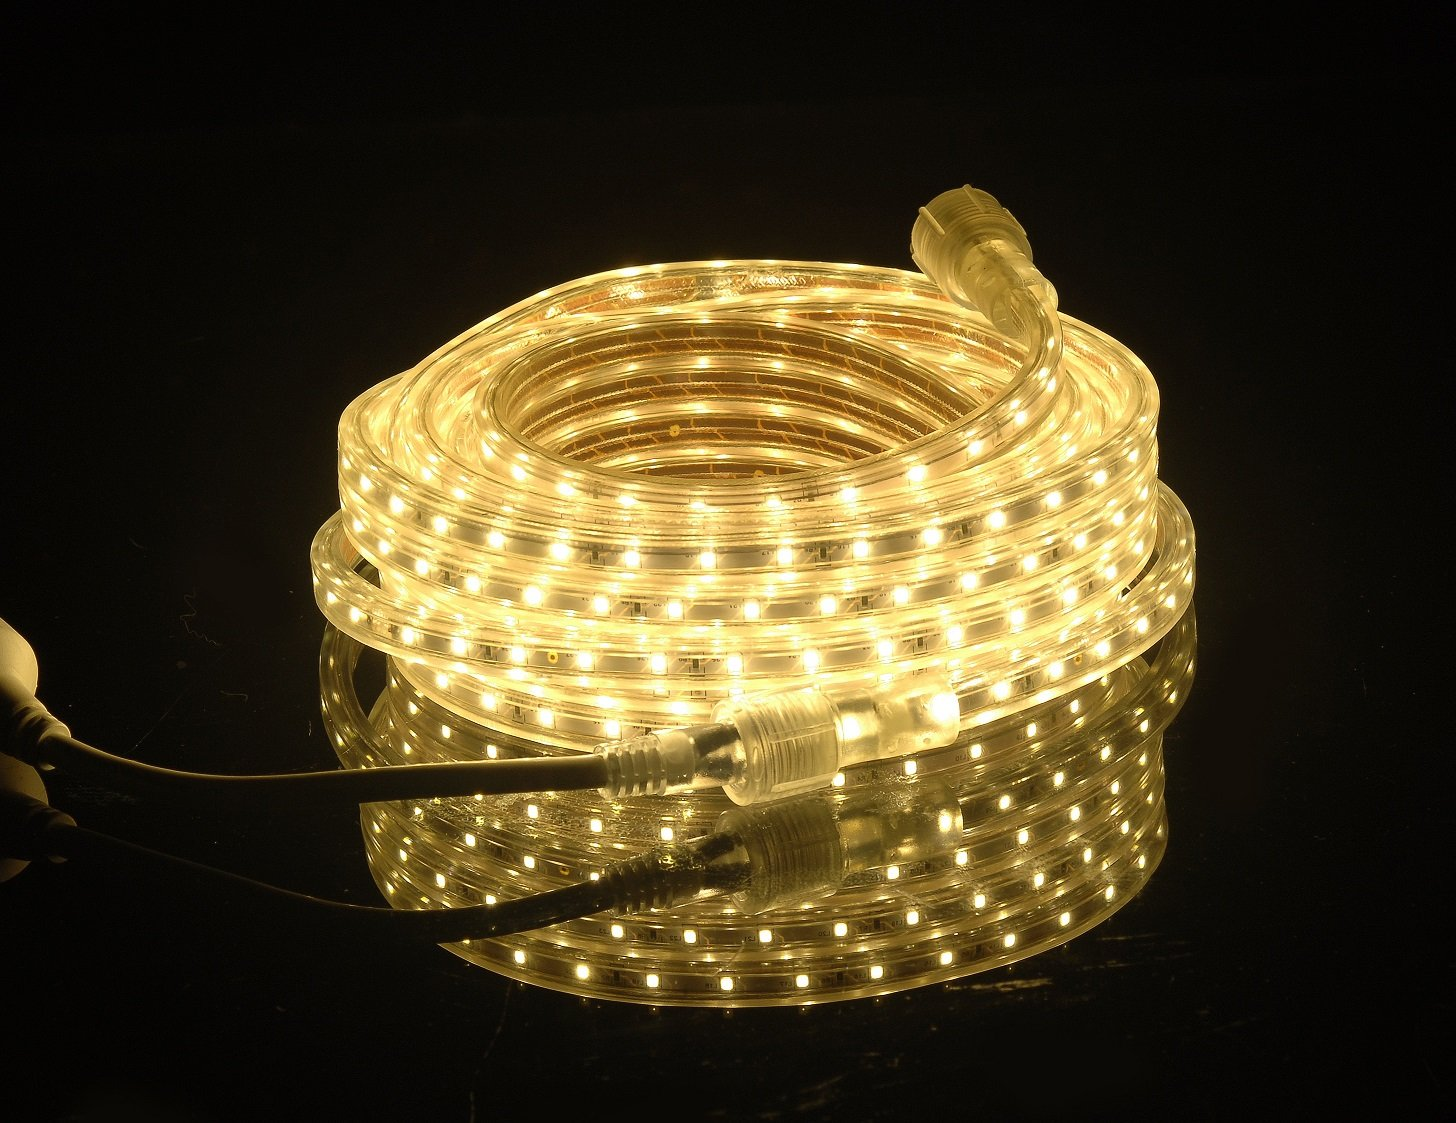 Ready to use CBConcept UL Listed Indoor//Outdoor Use 3000K Warm White 2100 Lumen 360 Units 3528 SMD LEDs Accessories Included, 20 Feet 120VSMD3528-6M-WW 110-120V AC Flexible Flat LED Strip Rope Light Dimmable